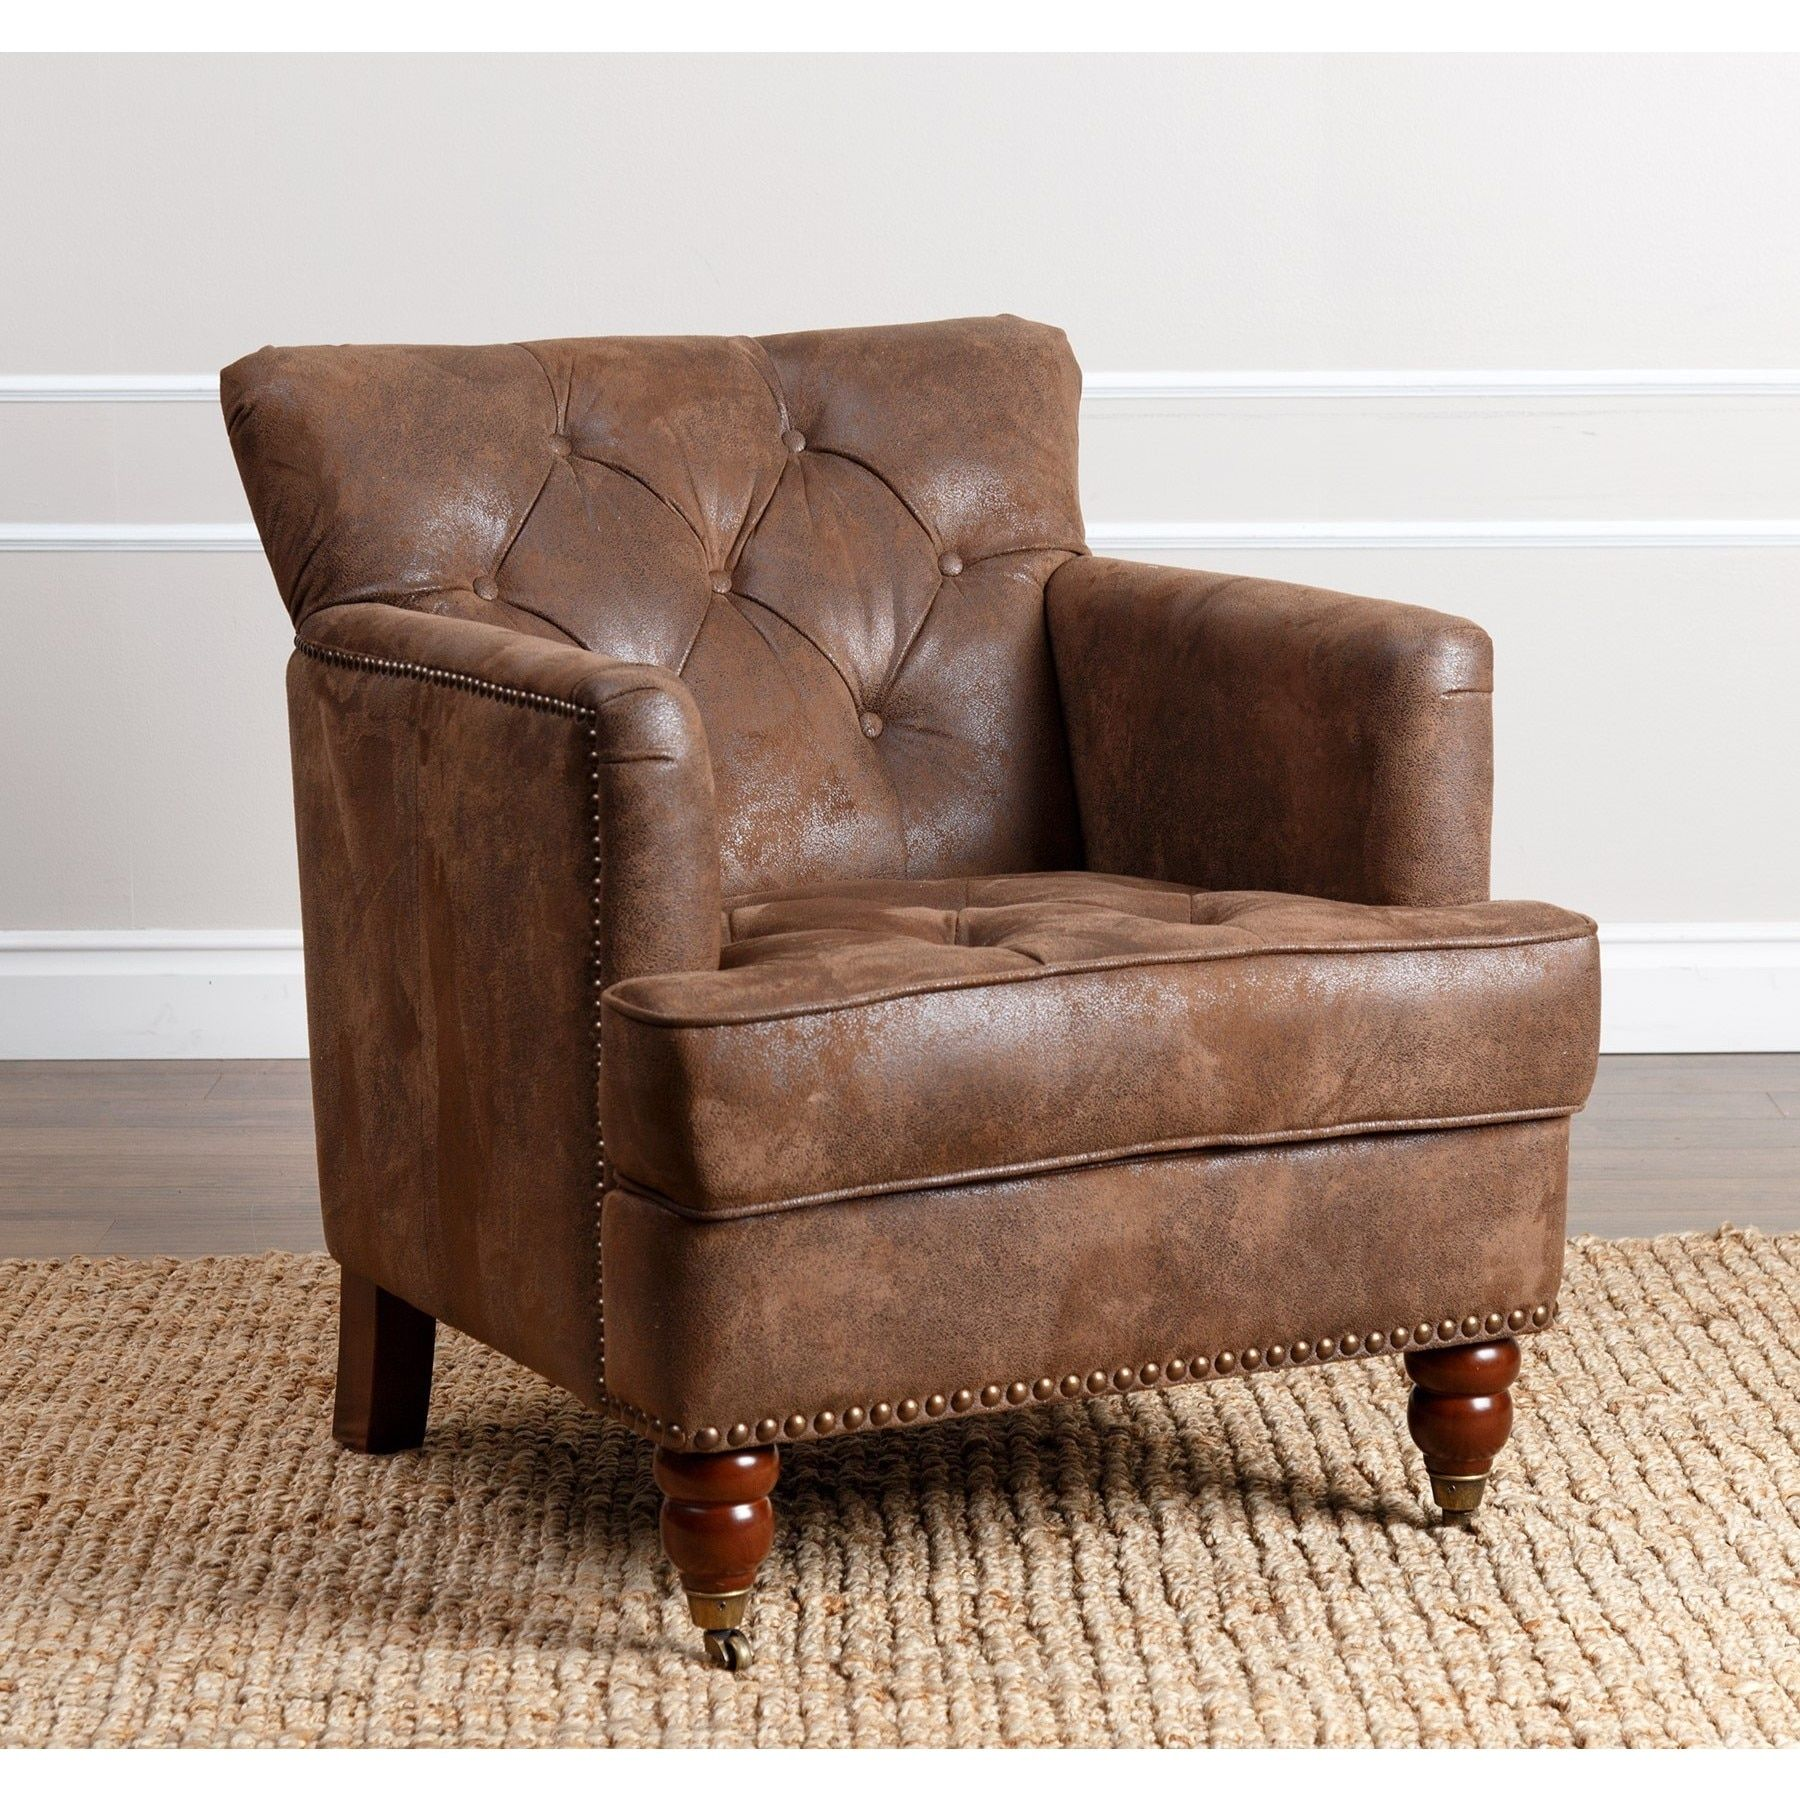 Etonnant Leather Chairs Home Goods: Free Shipping On Orders Over $45 At Overstock.com